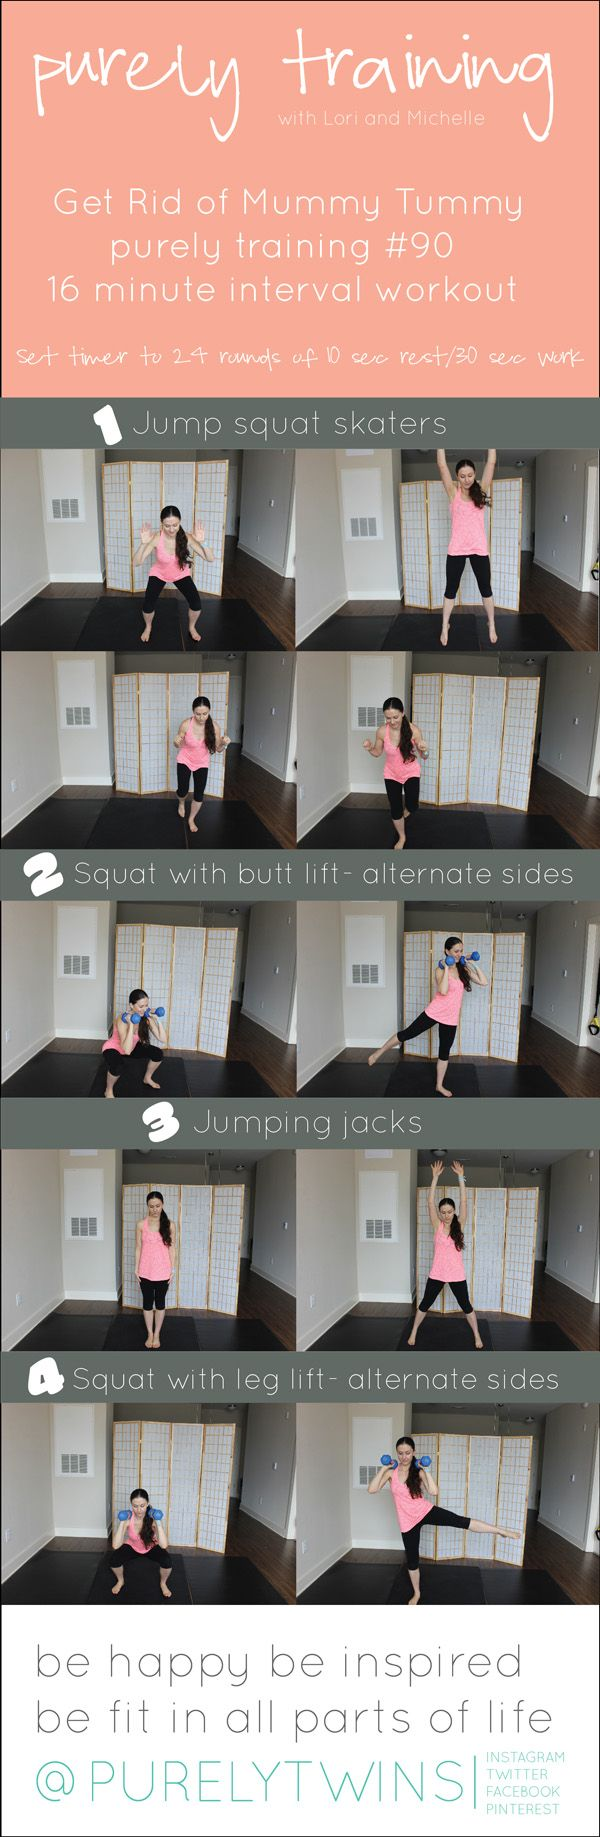 16 minute interval get rid of mummy tummy #workoutsformoms #fitmom #diastasisrecti